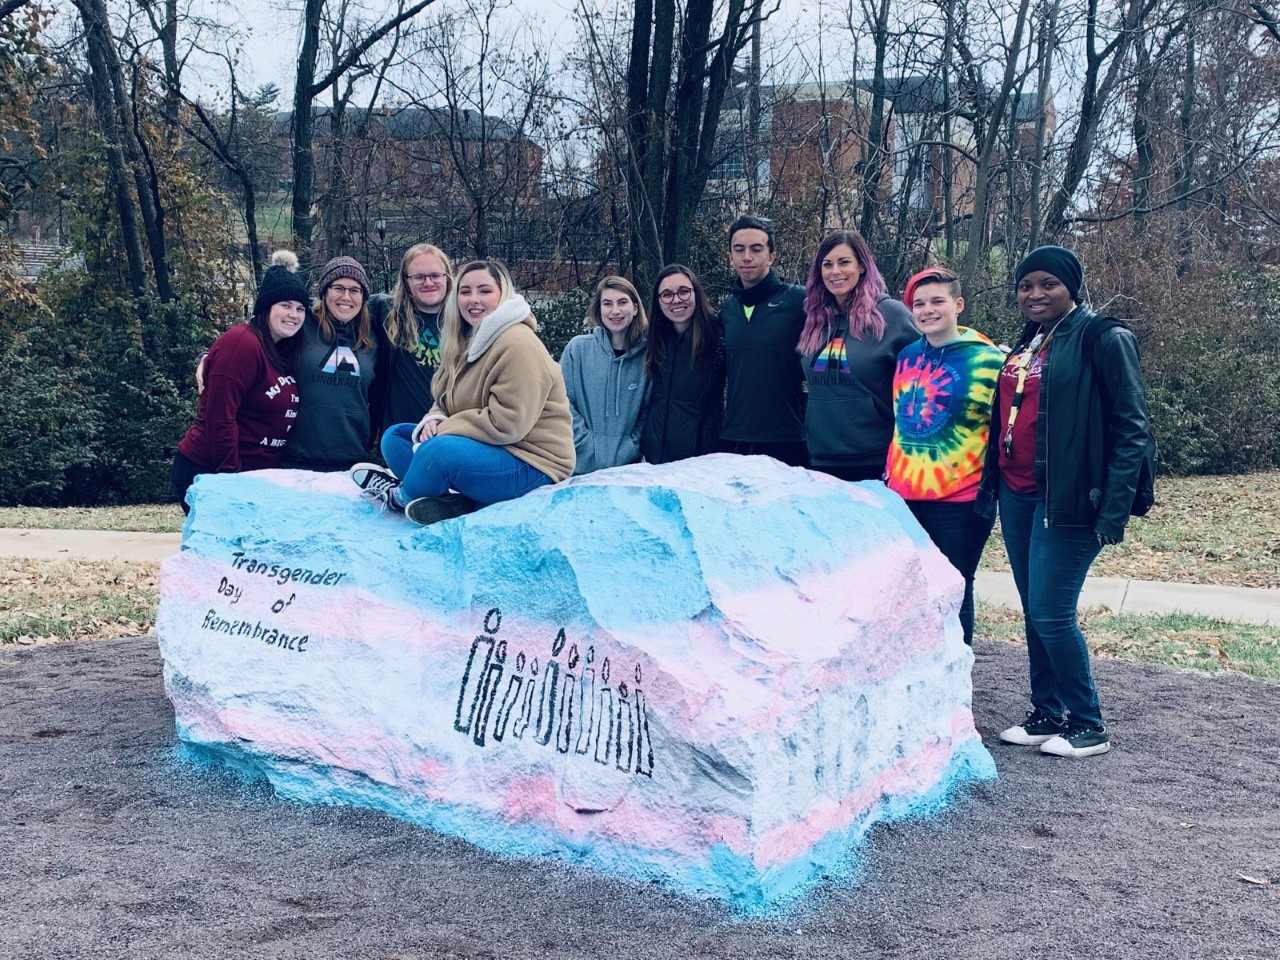 The Gender and Sexualities Alliance gathers for a photo around the Pride Rock on Nov. 17, after the slur was yelled.  Photo used with permission from Heather Brown-Hudson